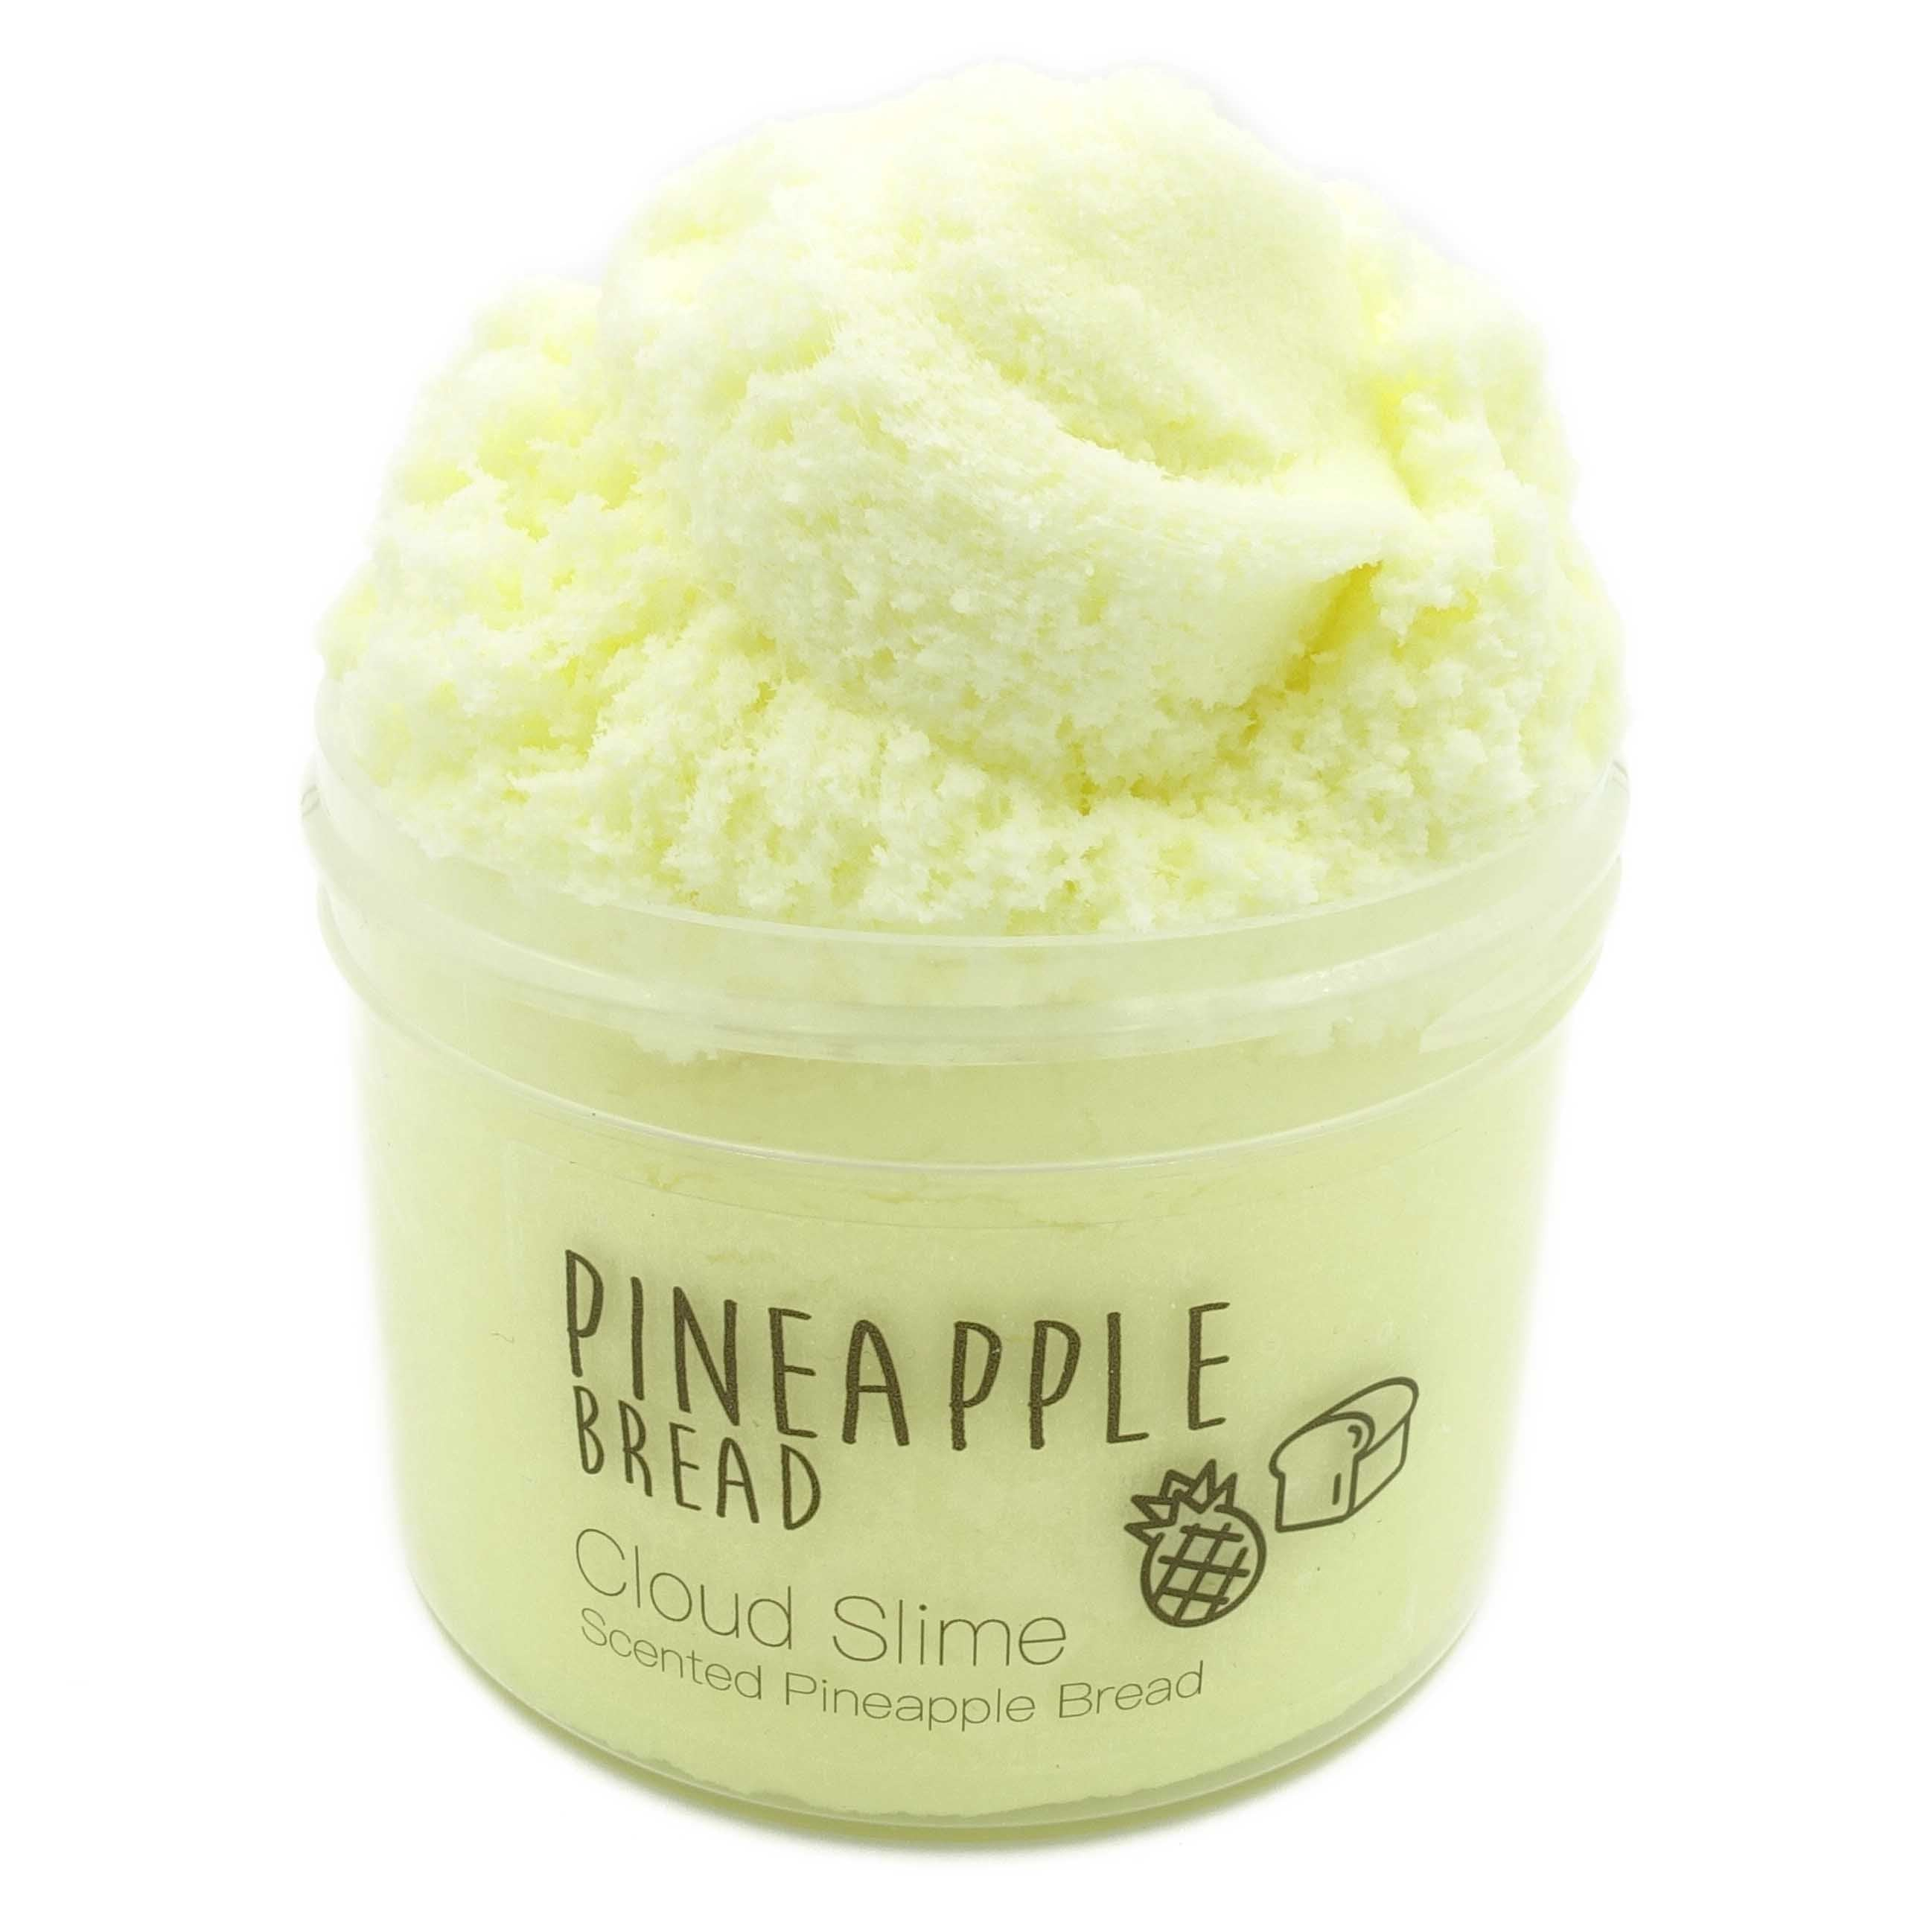 Frozen Pineapple Slime This Cloud Creme Slime Smells Just Like A